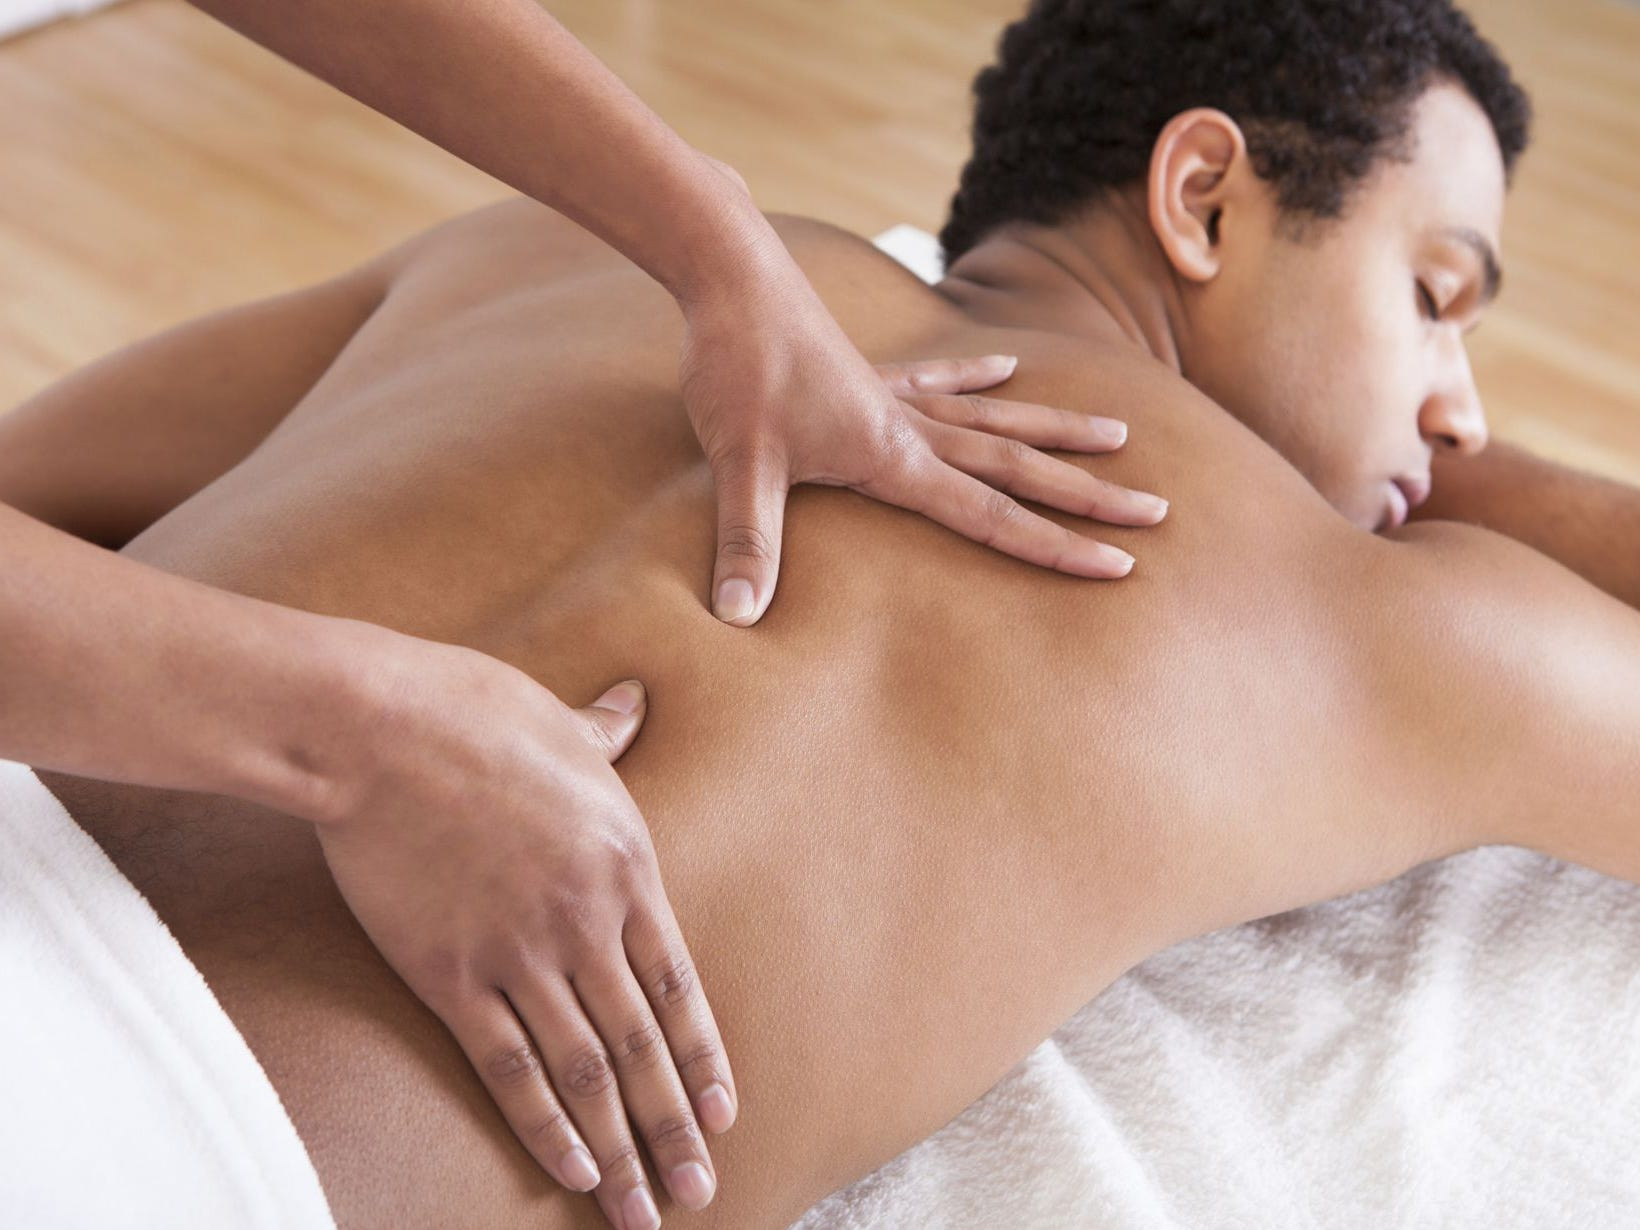 Massage Envy, hiring 170. The company has openings ranging from massage therapist to sales associate. More info: massageenvy.com/careers.